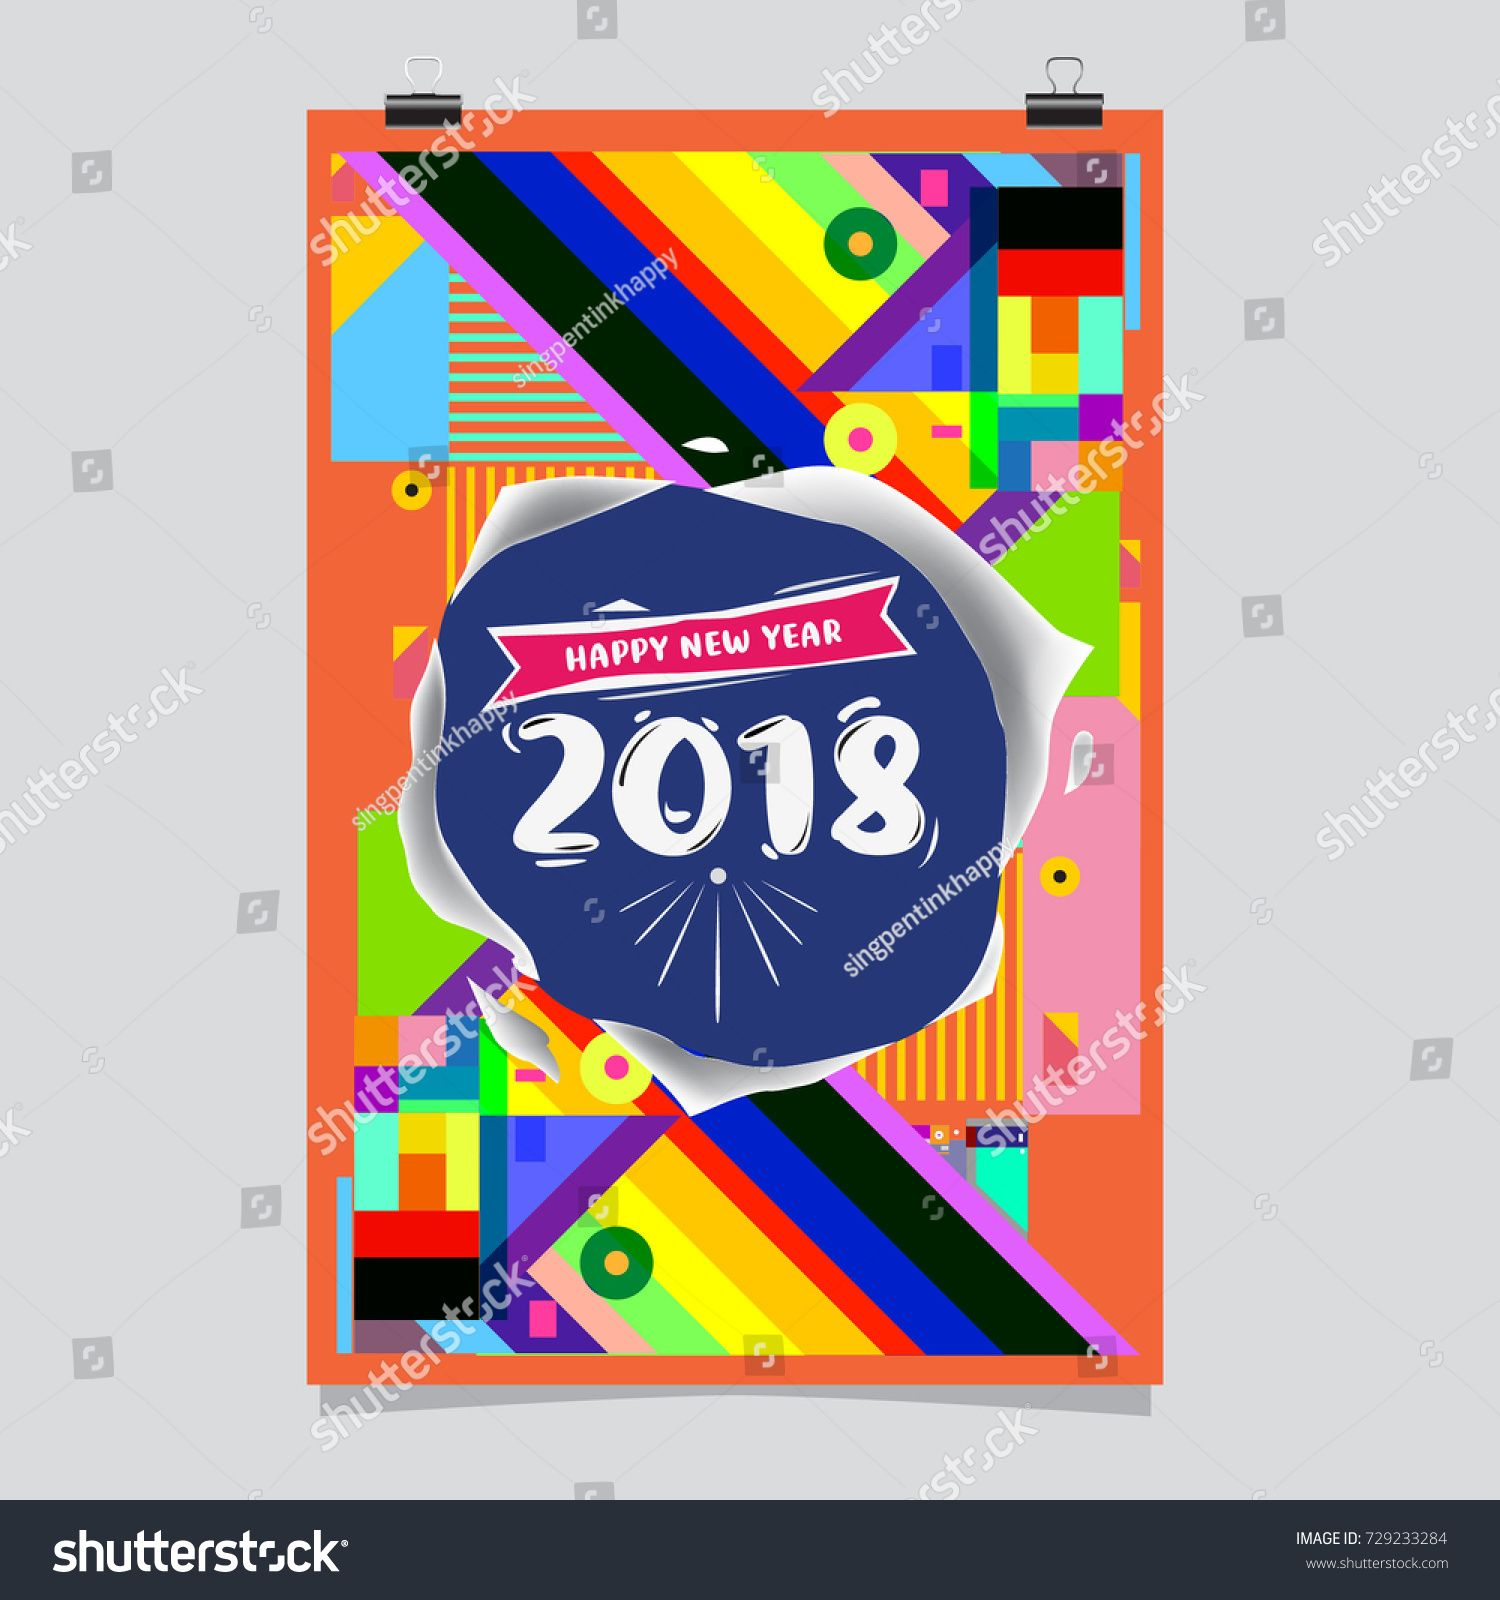 Happy new year 2018 colorful abstract design vector elements for happy new year 2018 colorful abstract design vector elements for calendar and greeting card kristyandbryce Images